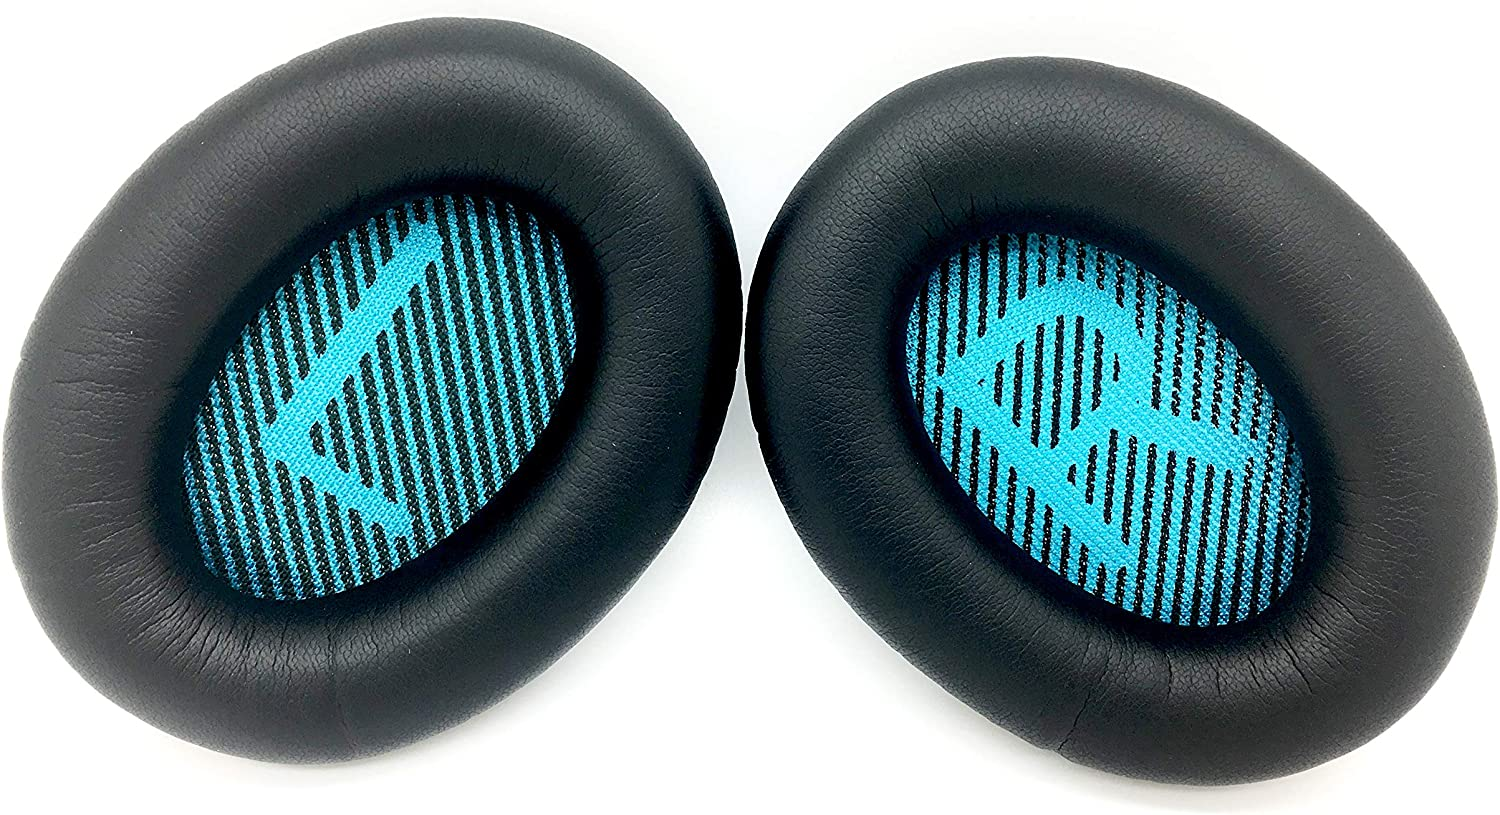 Headphone Replacement Ear Pads Low price by Cov AvimaBasics – Premium Ranking TOP15